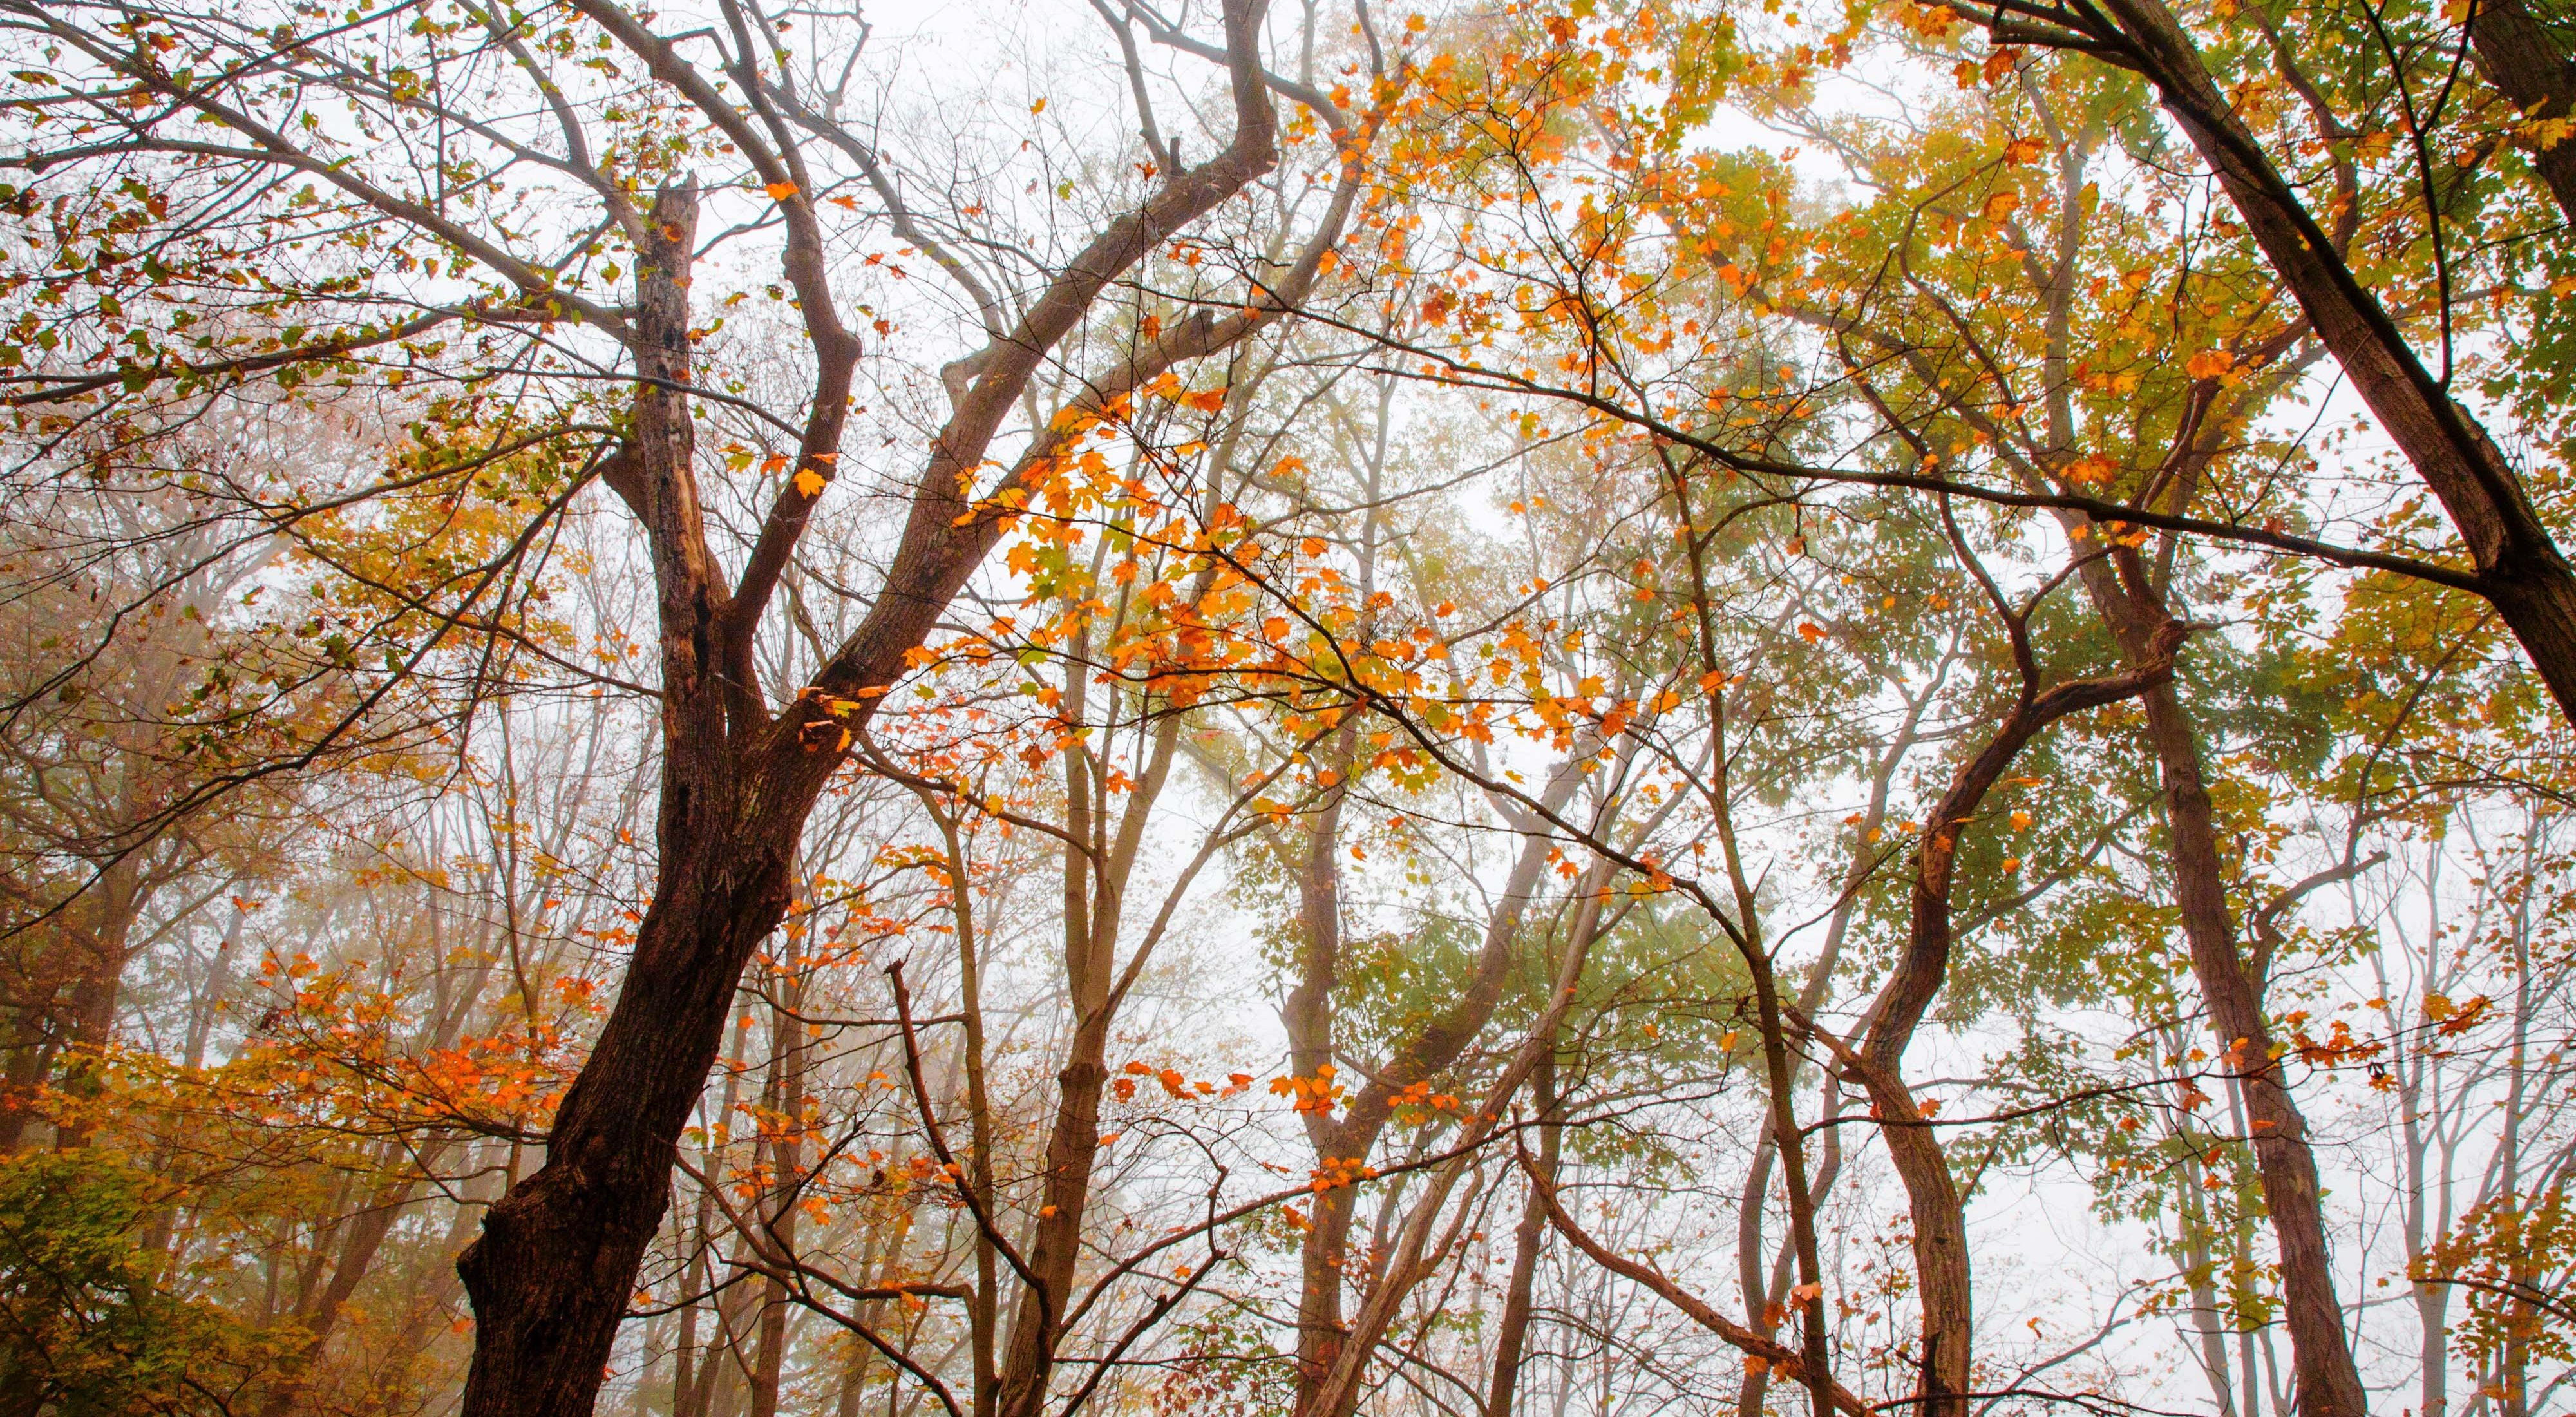 A cloudy sky is viewed through colorful treetops.